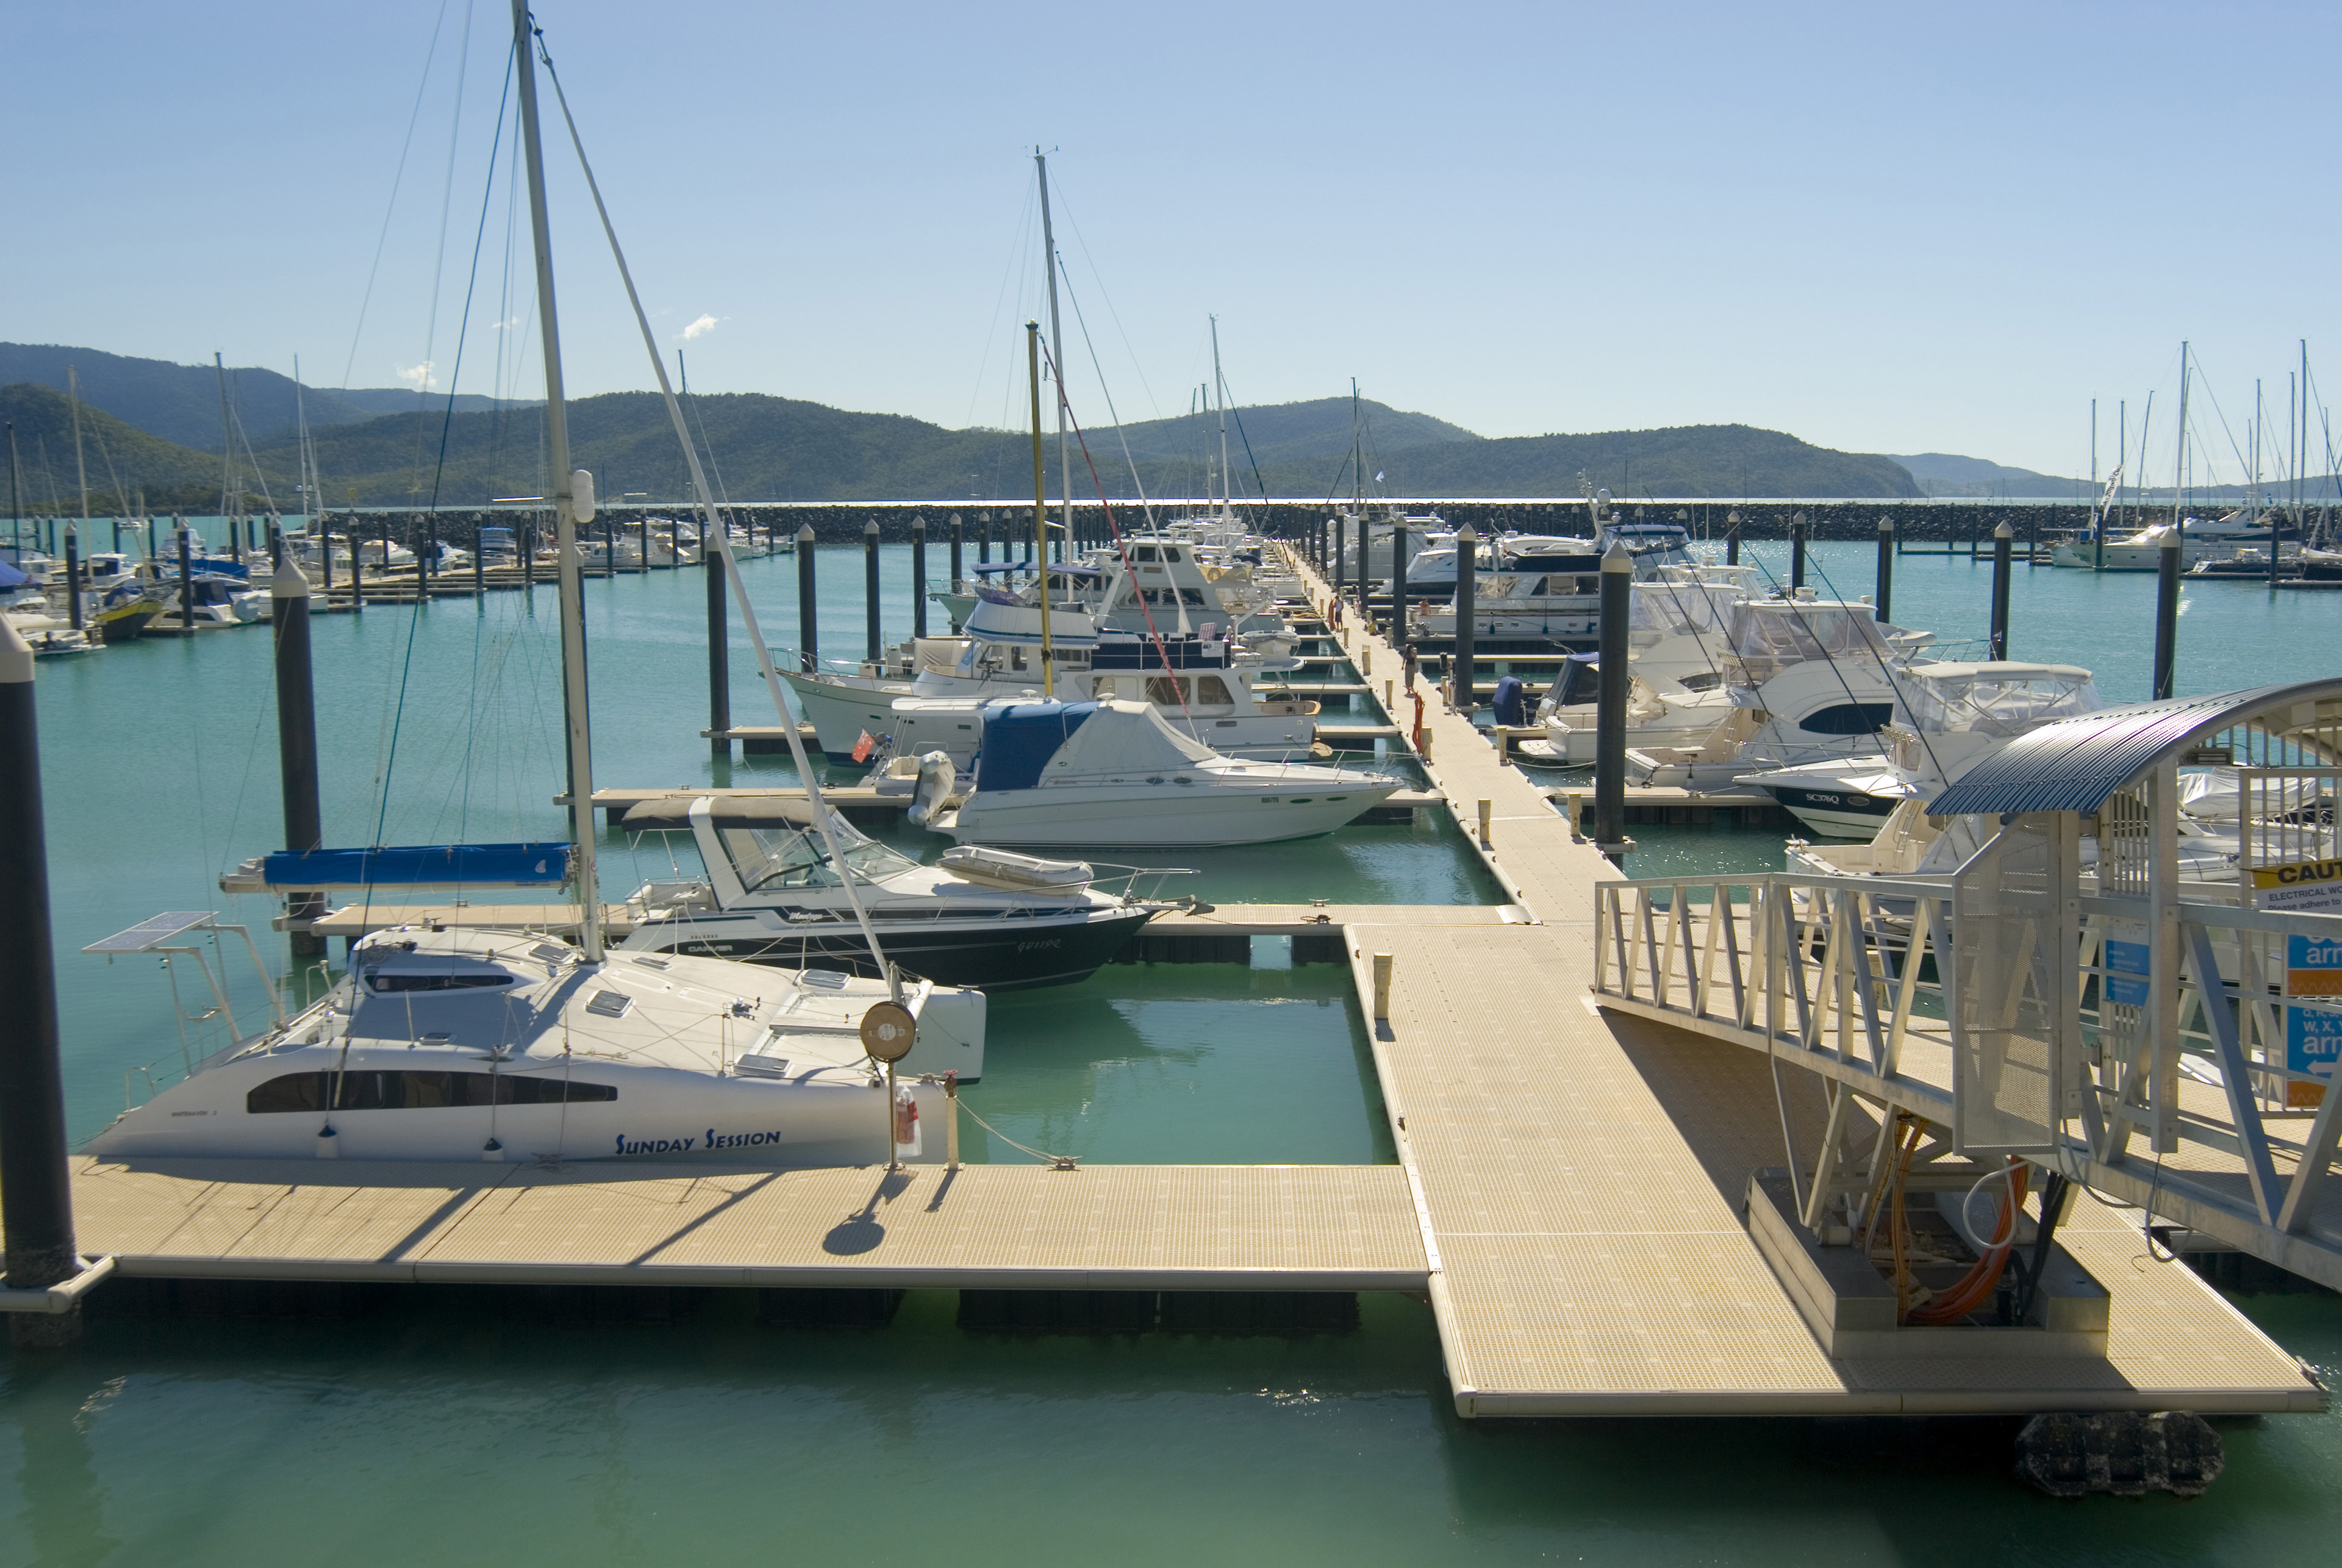 Yacht marina with moored boats alongside wooden floating pontoon jetties on a sunny summer day